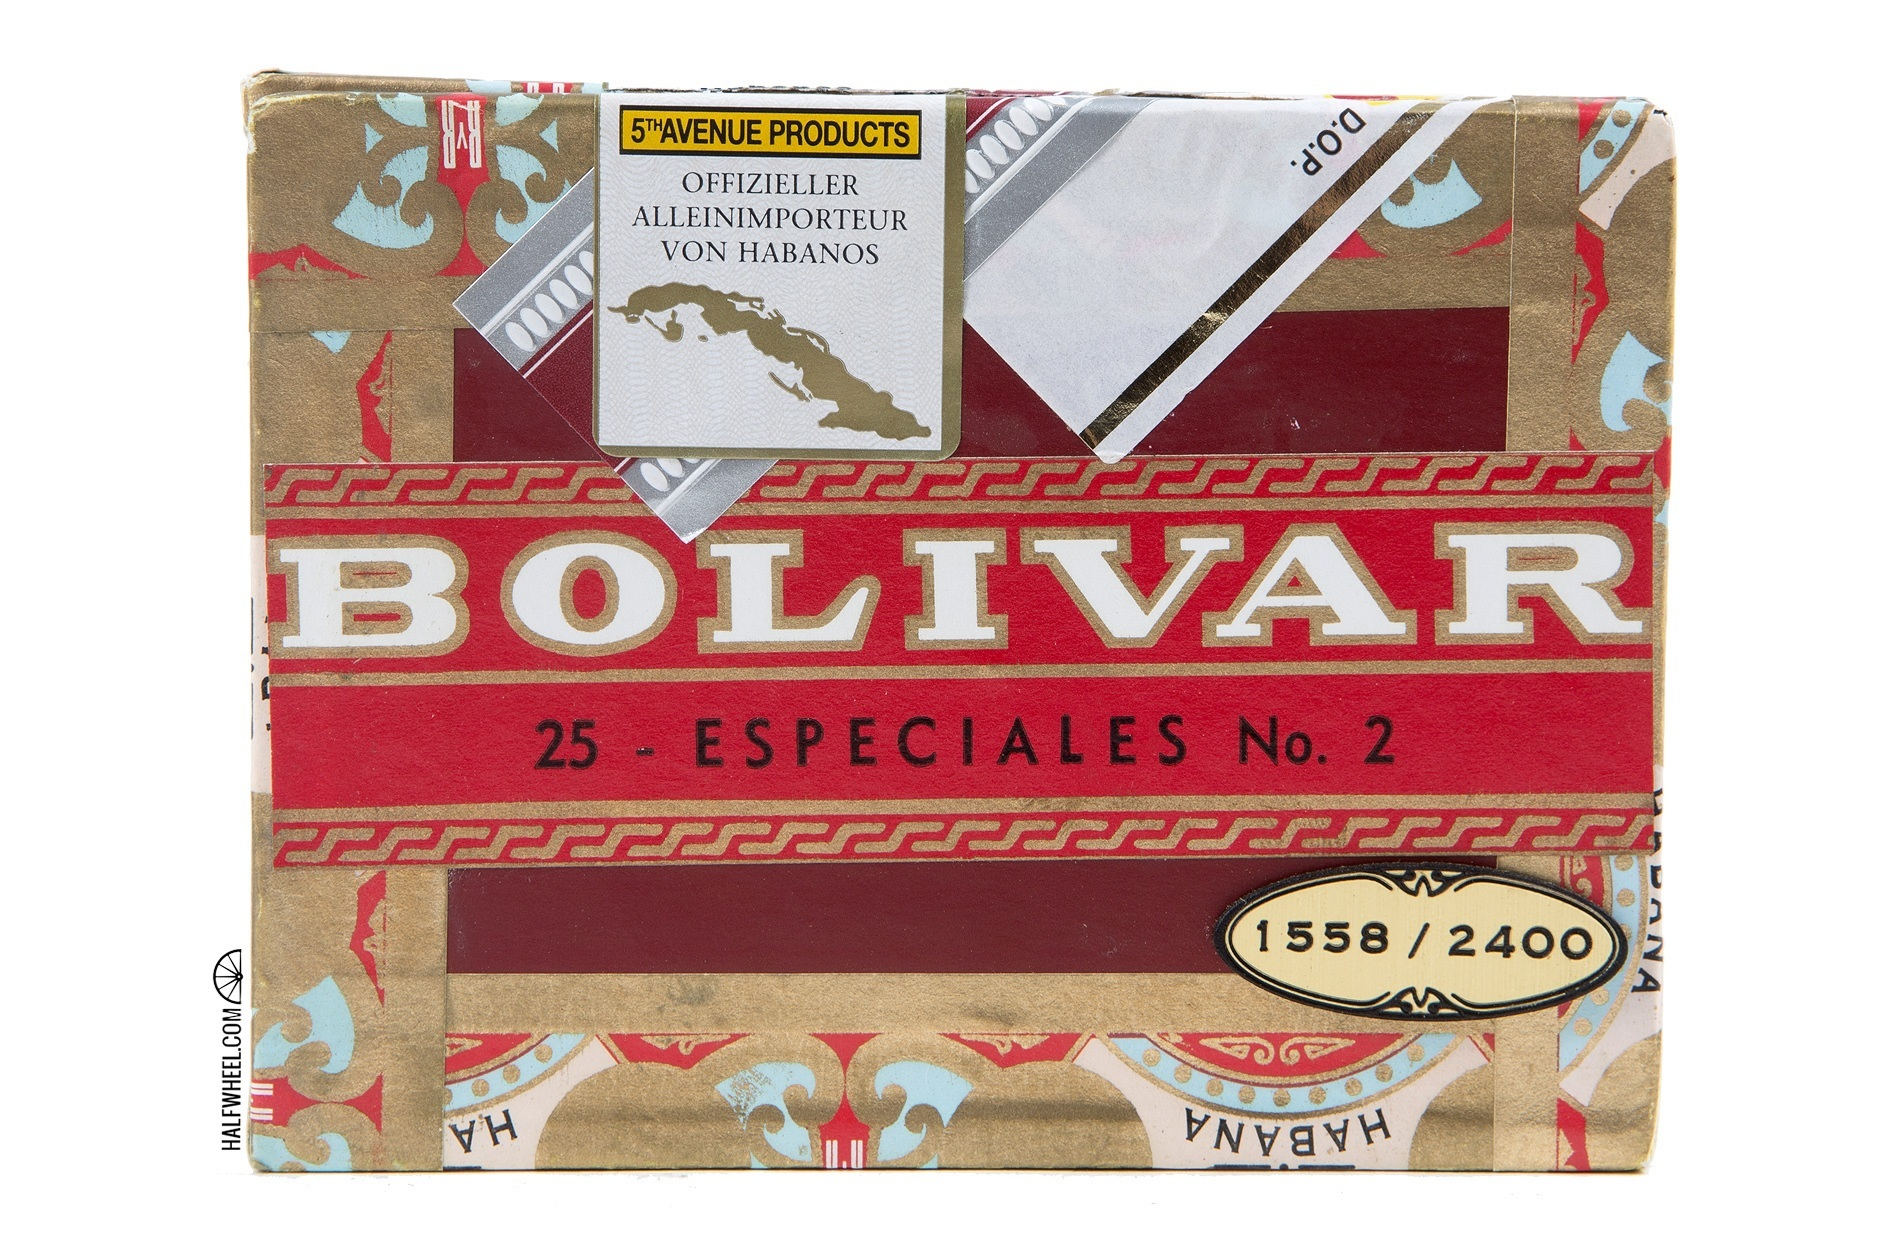 Bolivar Especiales No 2  ER Germany 2009 Box 3